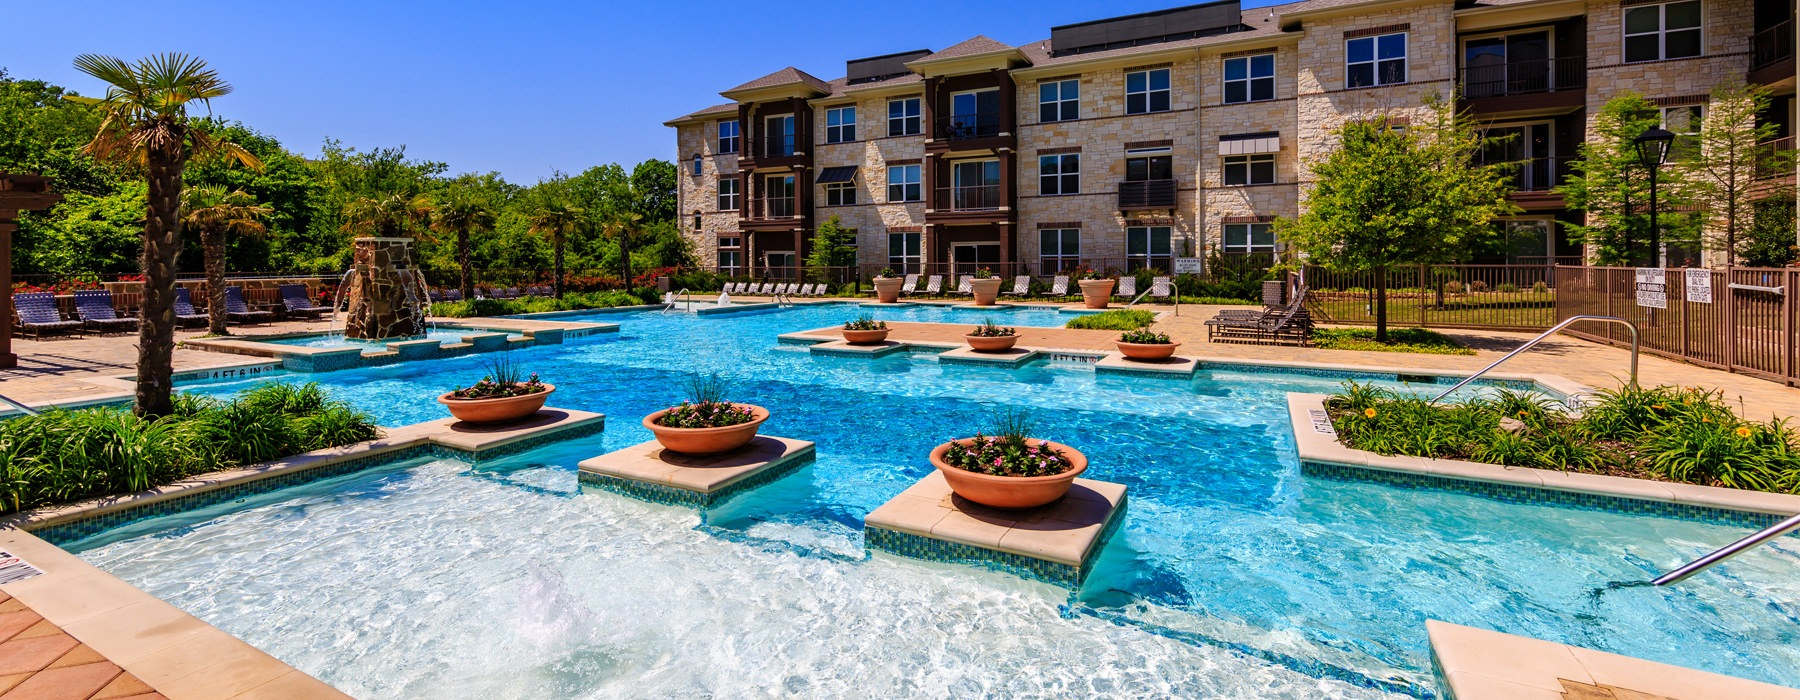 Poolside seating and fountain